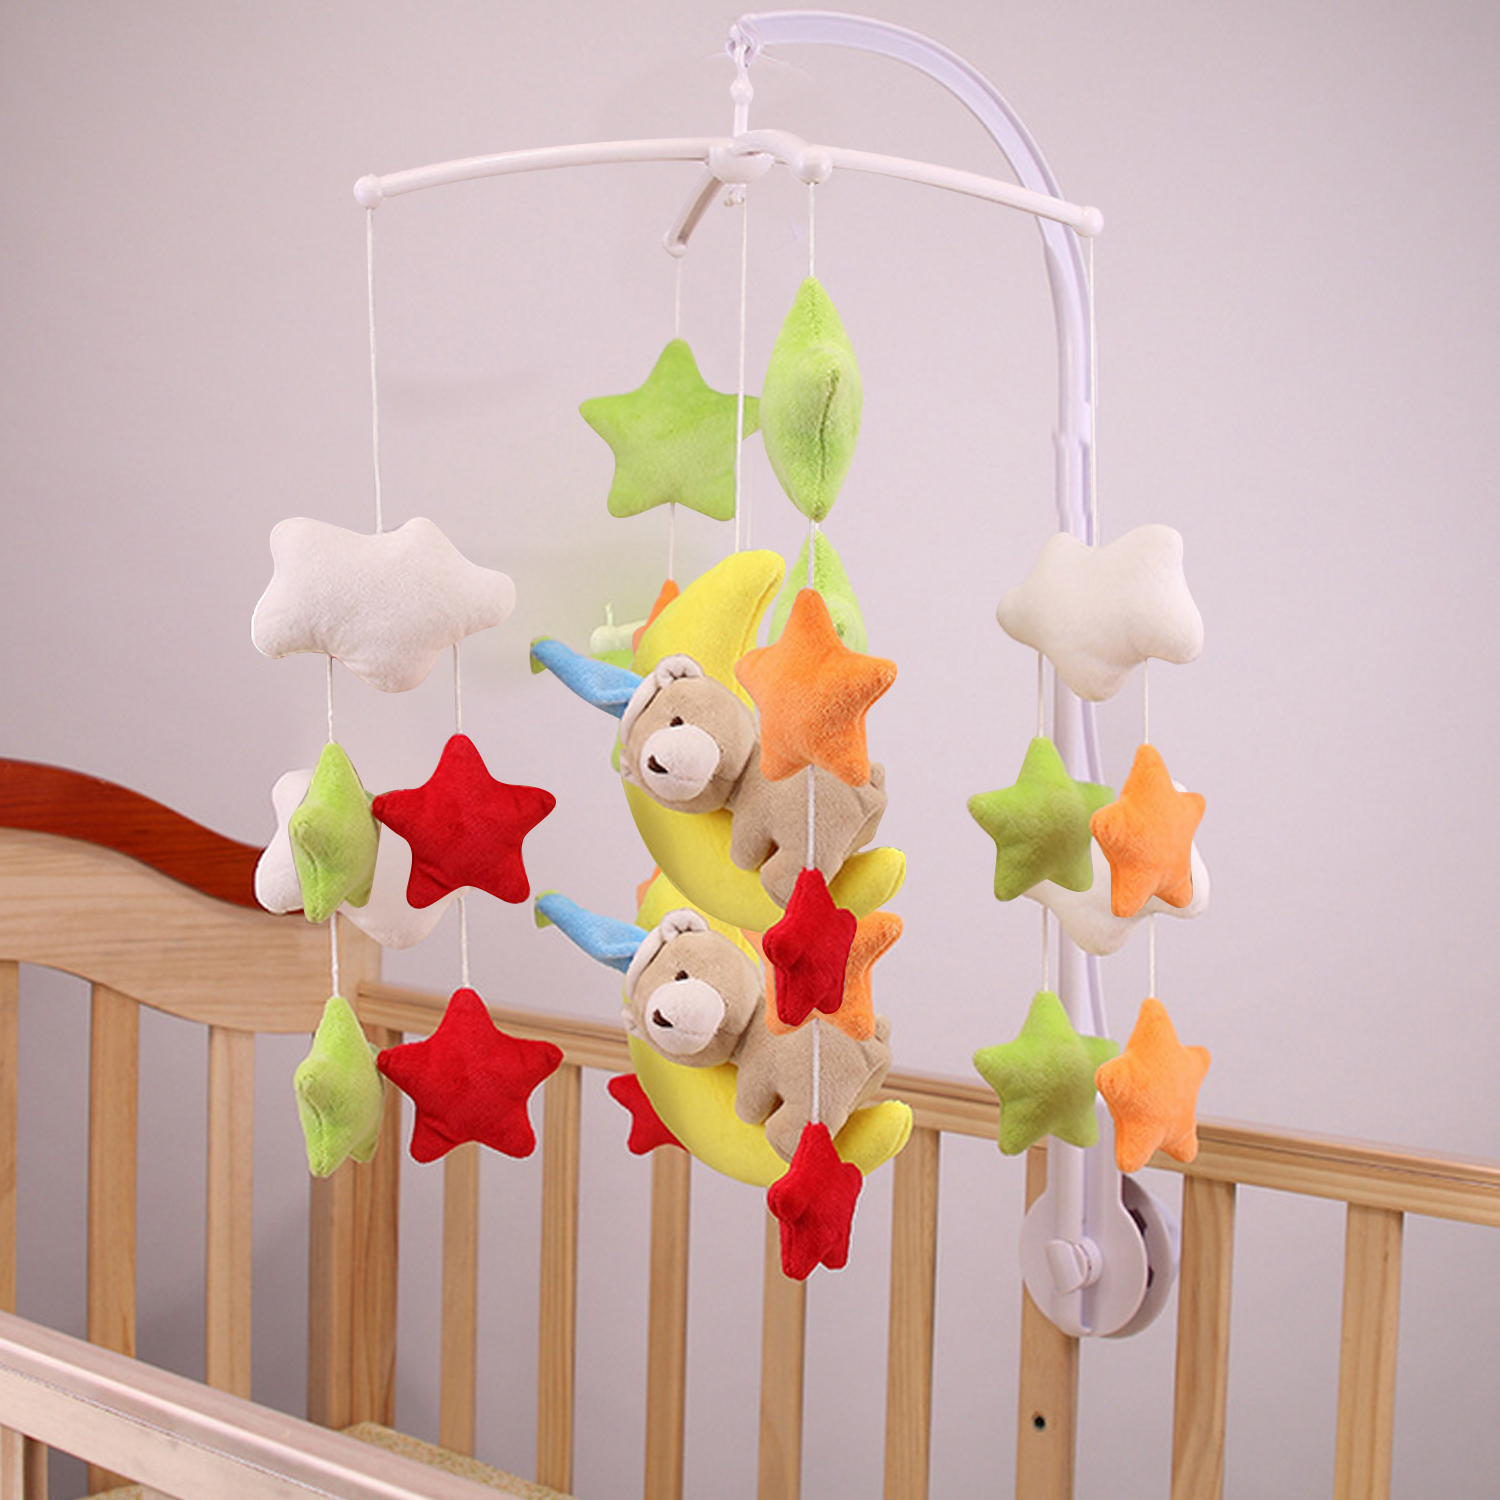 Infant <font><b>Crib</b></font> Cradle Mobile Bed Bell Music Box <font><b>Holder</b></font> Arm Bracket for Hanging Music Box Bell <font><b>Toys</b></font> <font><b>Baby</b></font> Bed Hanging Rattles Bracket image